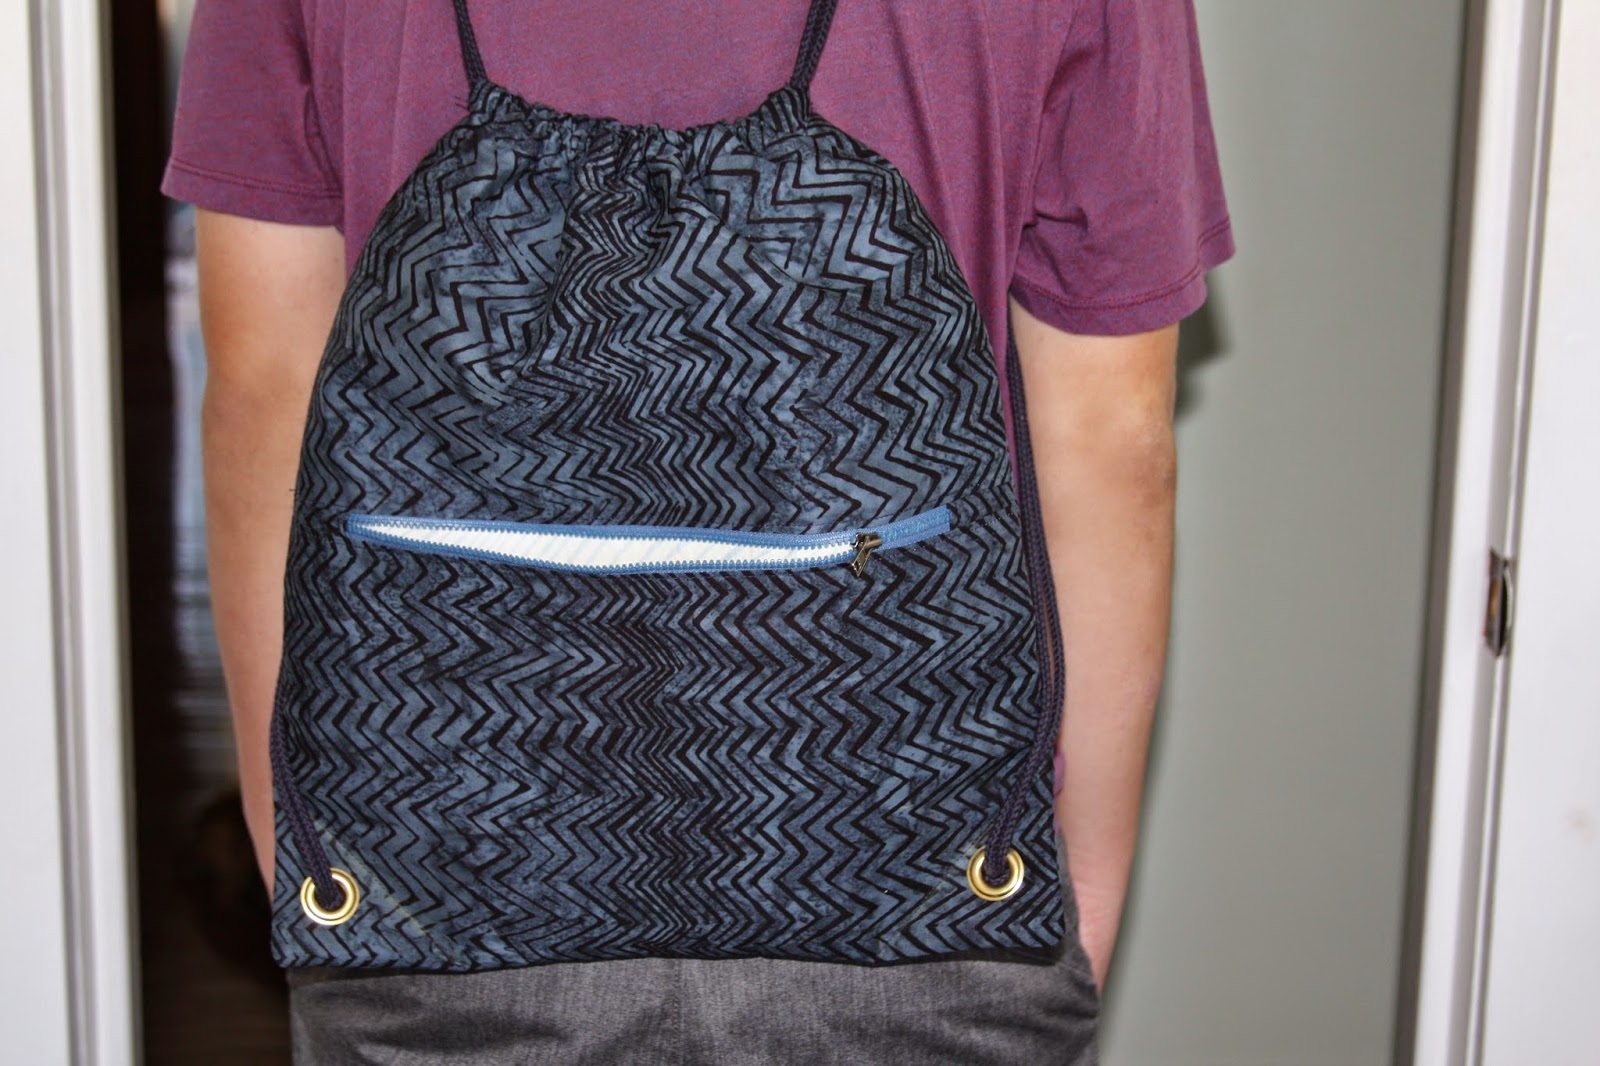 http://www.lovequilting.com/shop/free-lovequilting-com-exclusive/string-backpack-fully-lined-zippered-outside-pocket/